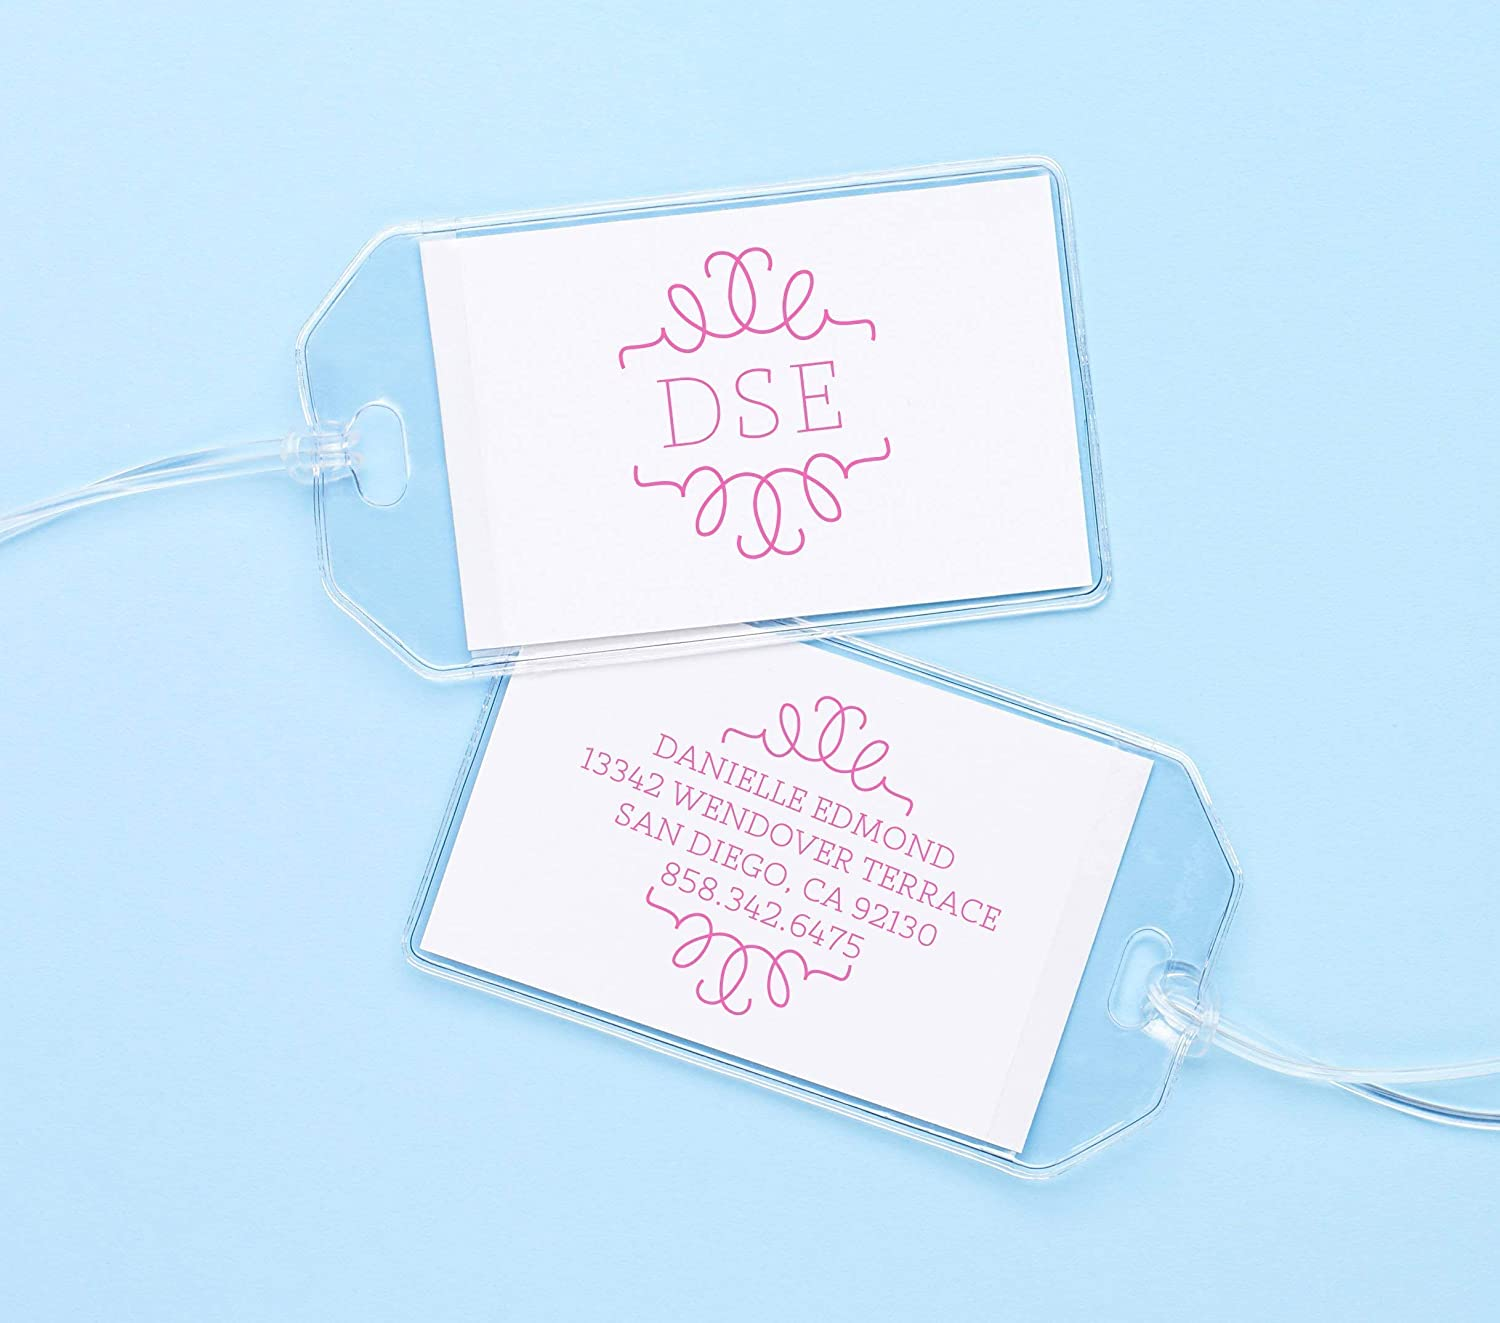 Personalized Monogrammed Sales of SALE items from new works ID Tags Kids At the price Custom for Backpacks